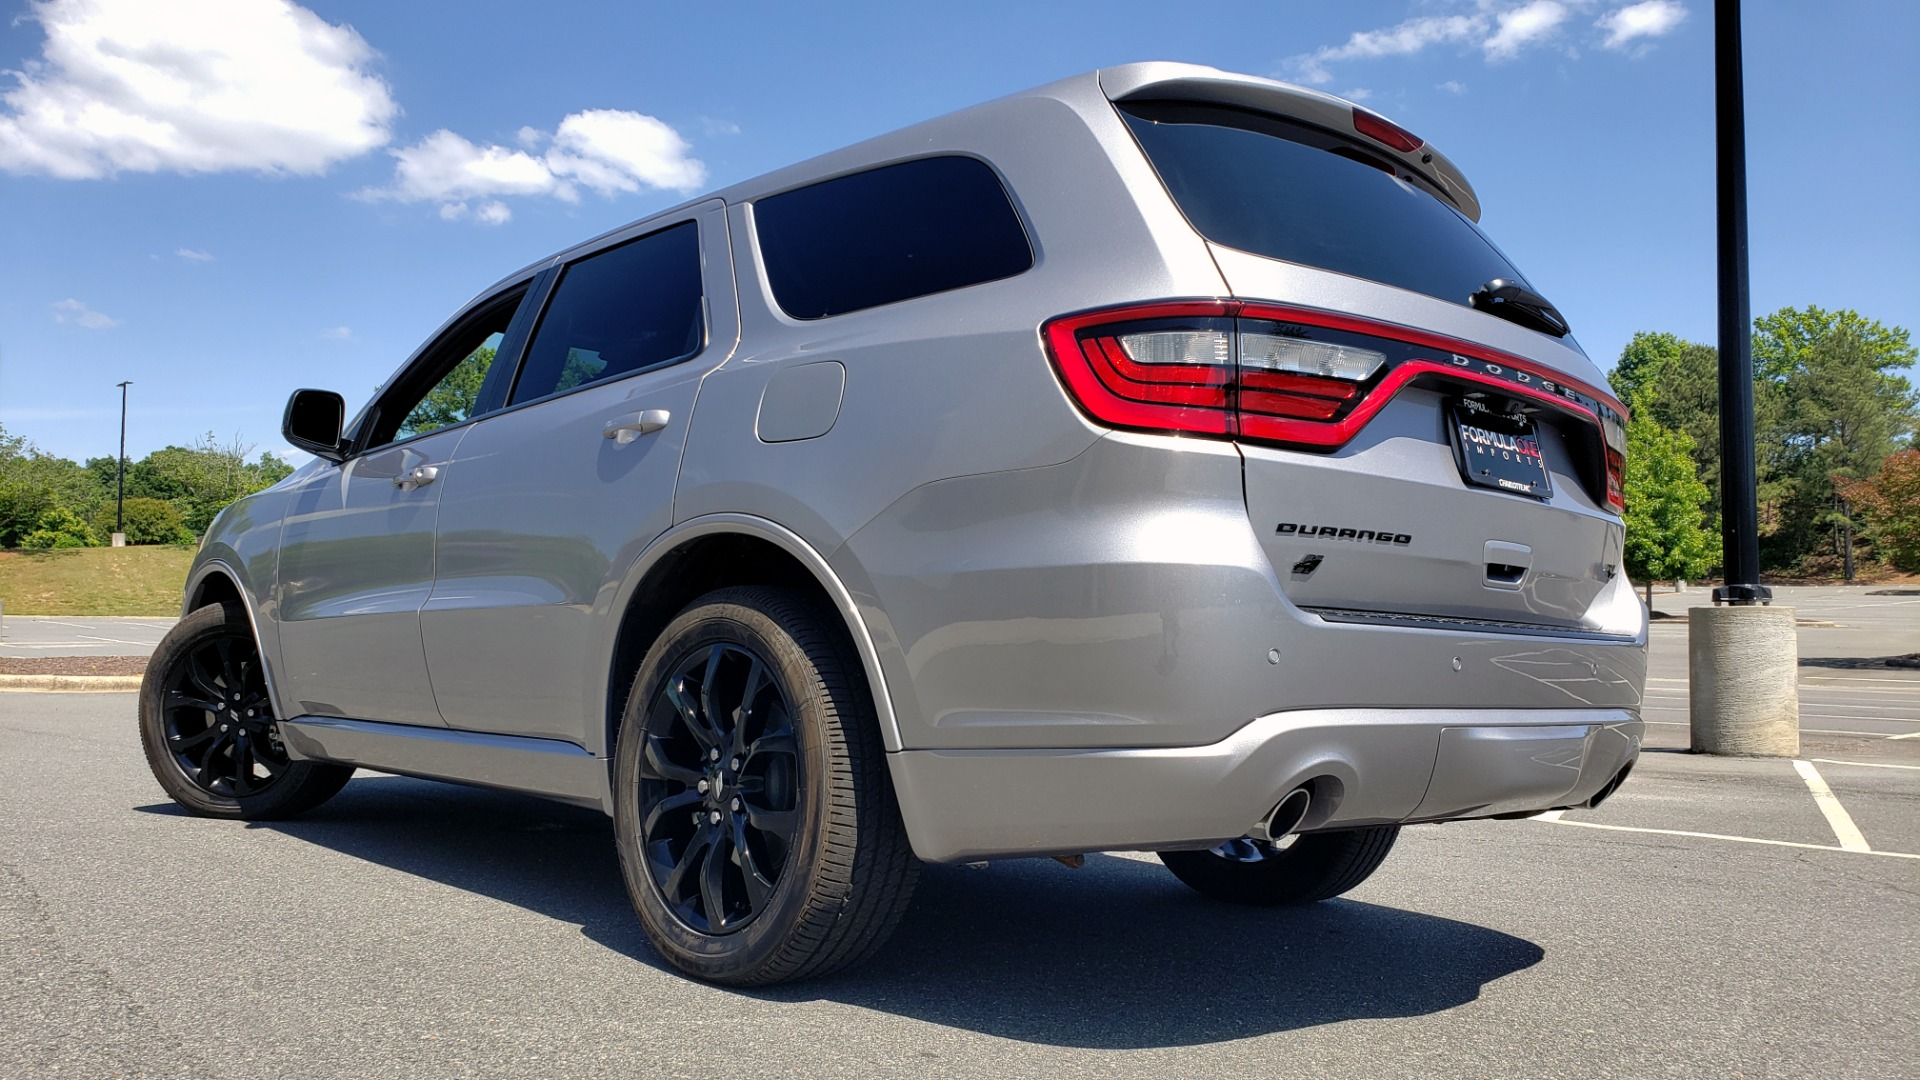 Used 2019 Dodge DURANGO R/T BLACKTOP AWD / TECH / ADAPT CRUS / TOW GROUP / SUNROOF / REARVIEW for sale Sold at Formula Imports in Charlotte NC 28227 9